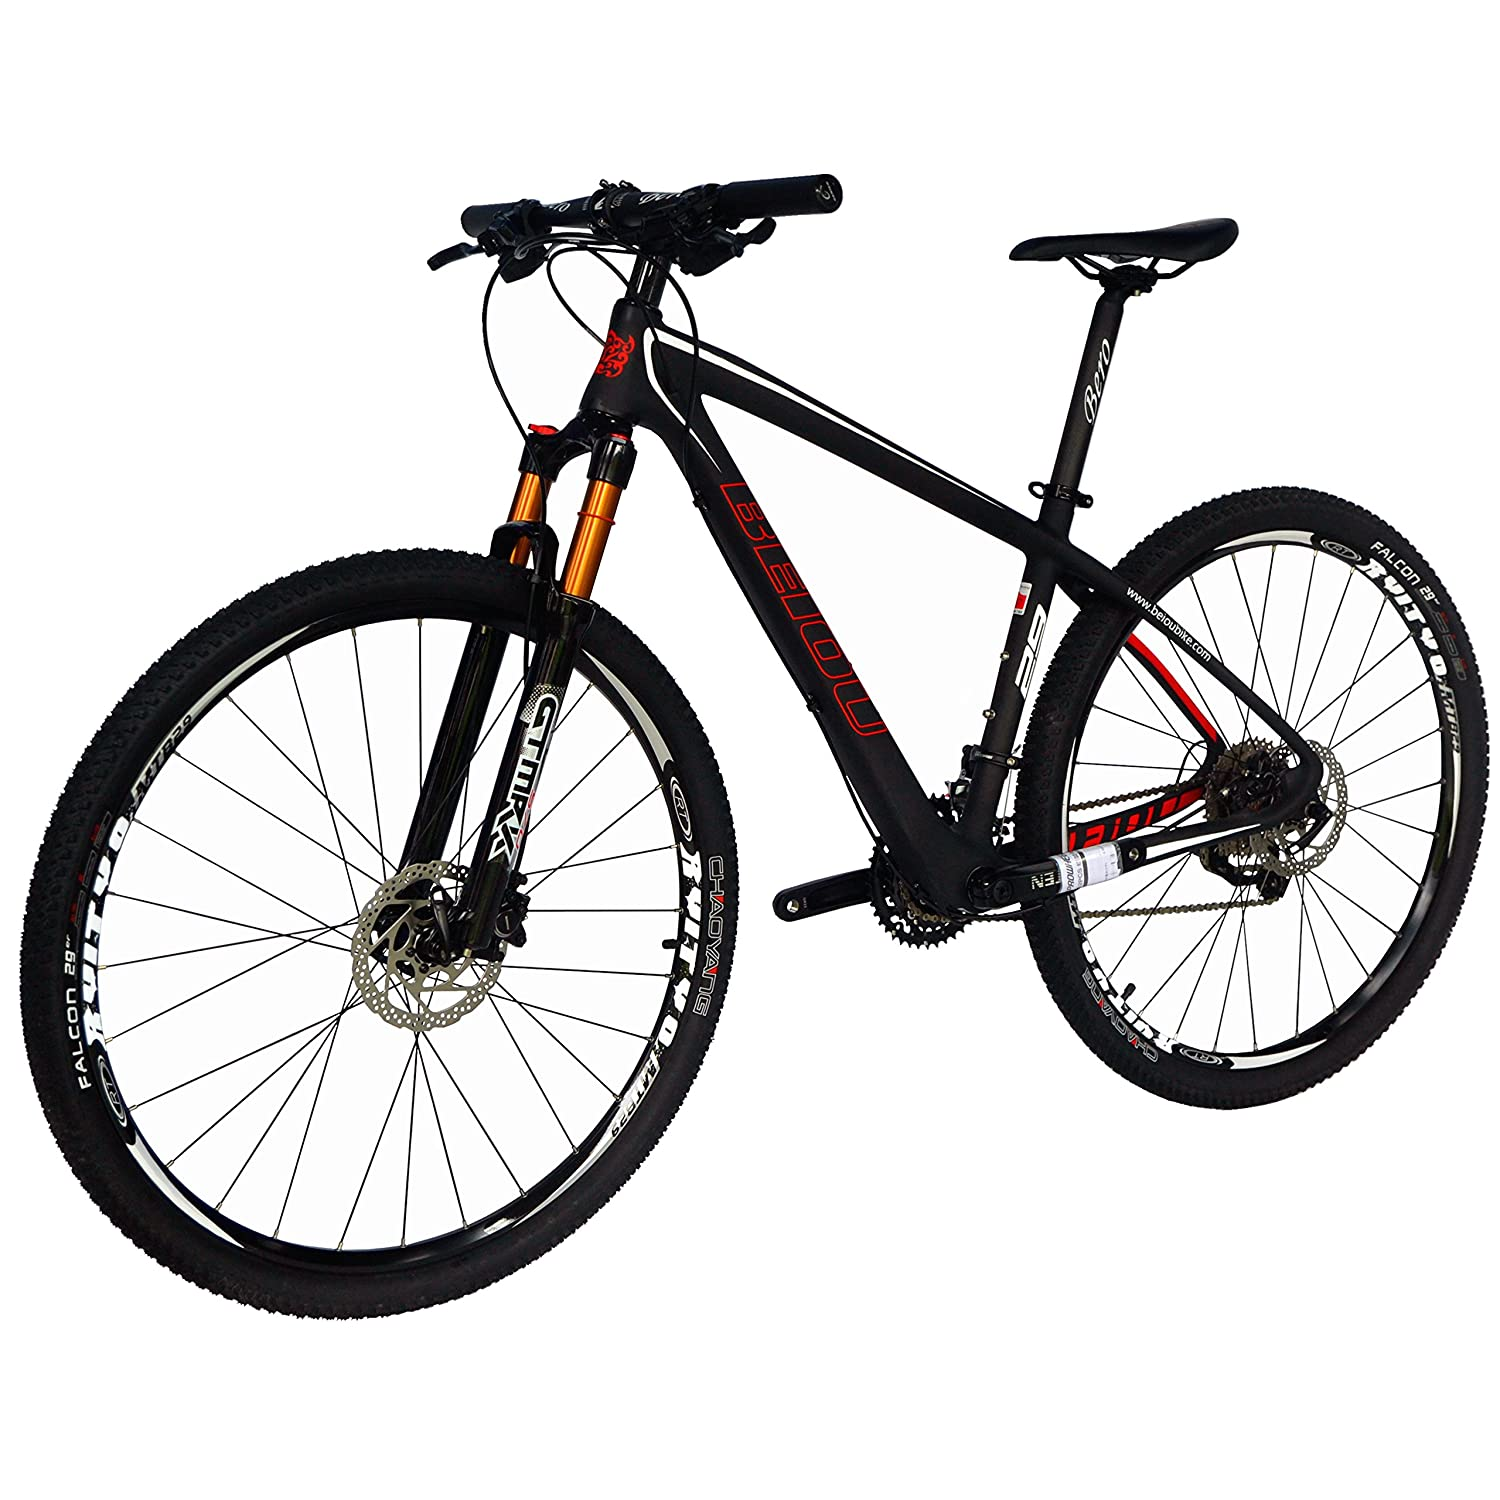 Amazon.com: BEIOU Carbon Fiber 27.5 Mountain Bike 10.7kg ...